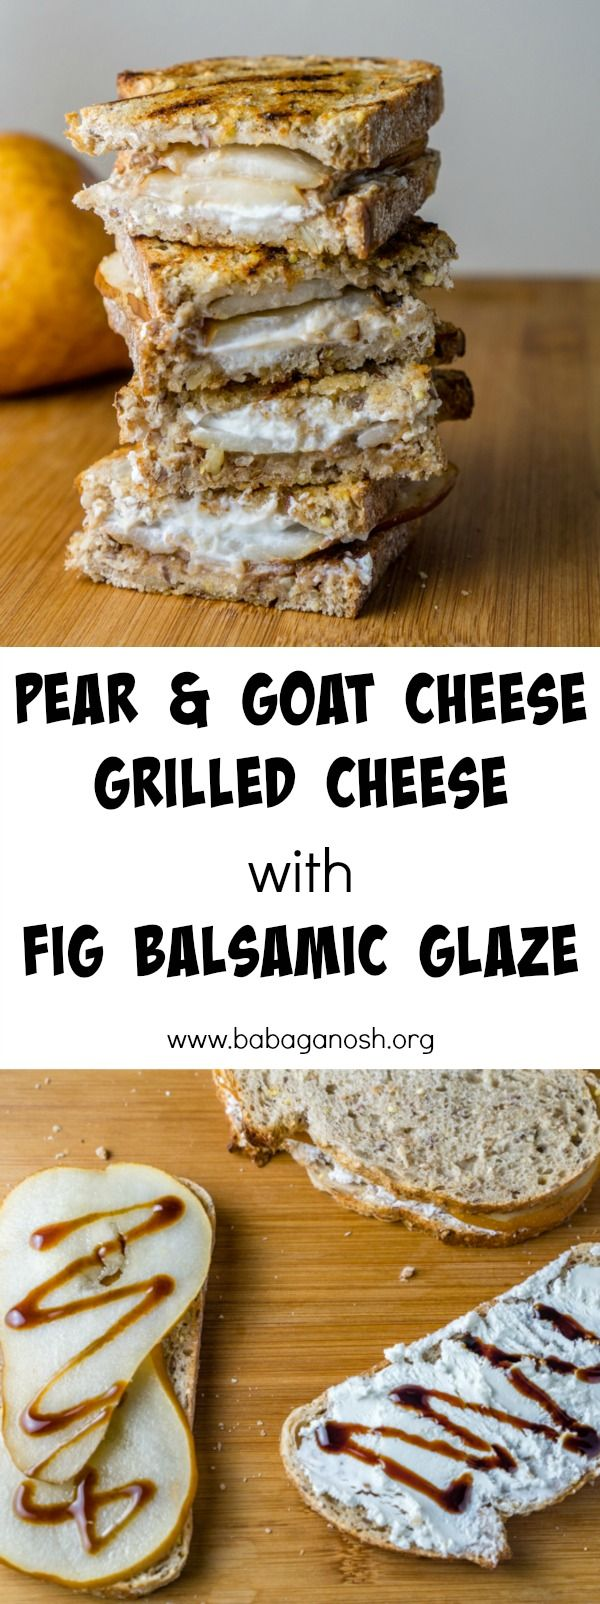 Pear & Goat Cheese Grilled Cheese with a Fig Balsamic Glaze - so easy and SO delicious!